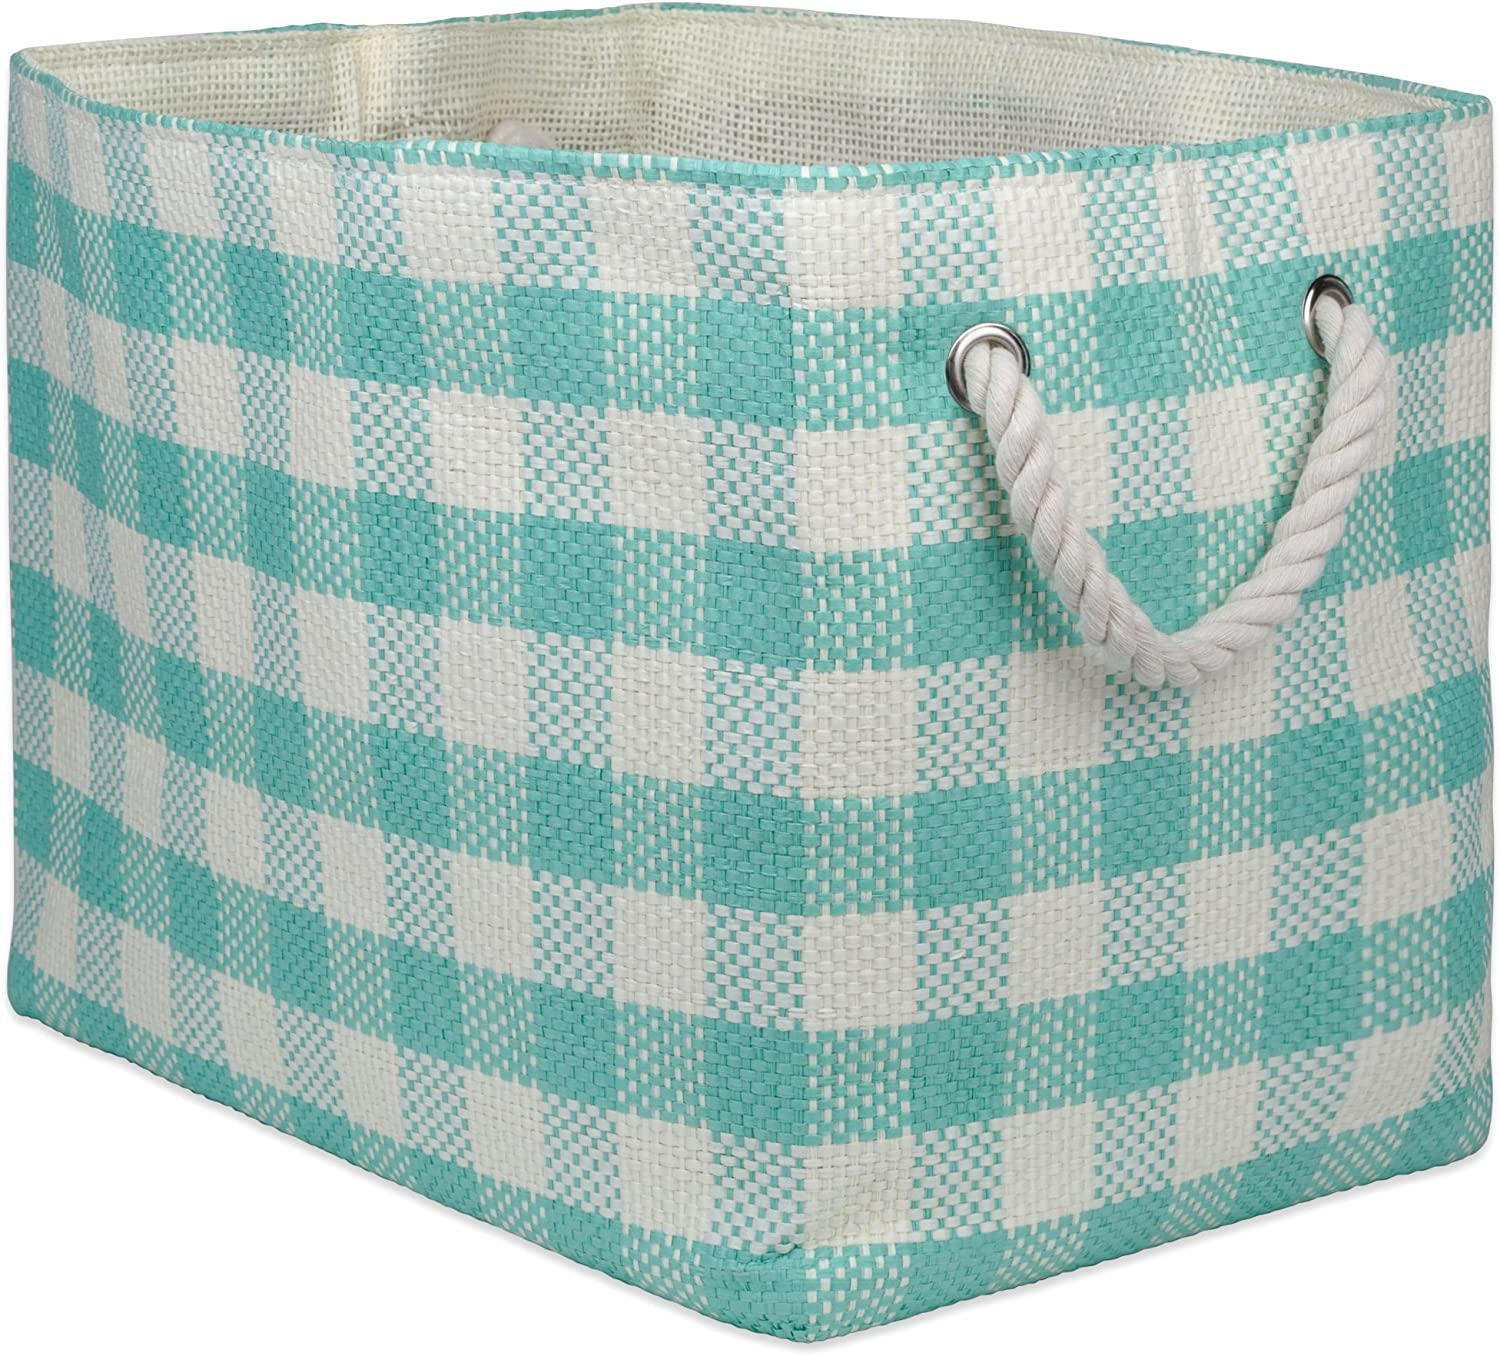 "Bedroom Medium - 15x10x12/"" Collapsible /& Convenient Home Organization Solution for Office /& Laundry/  Closet DII Oversize Woven Paper Storage Basket or Bin Black Checkered Toys"